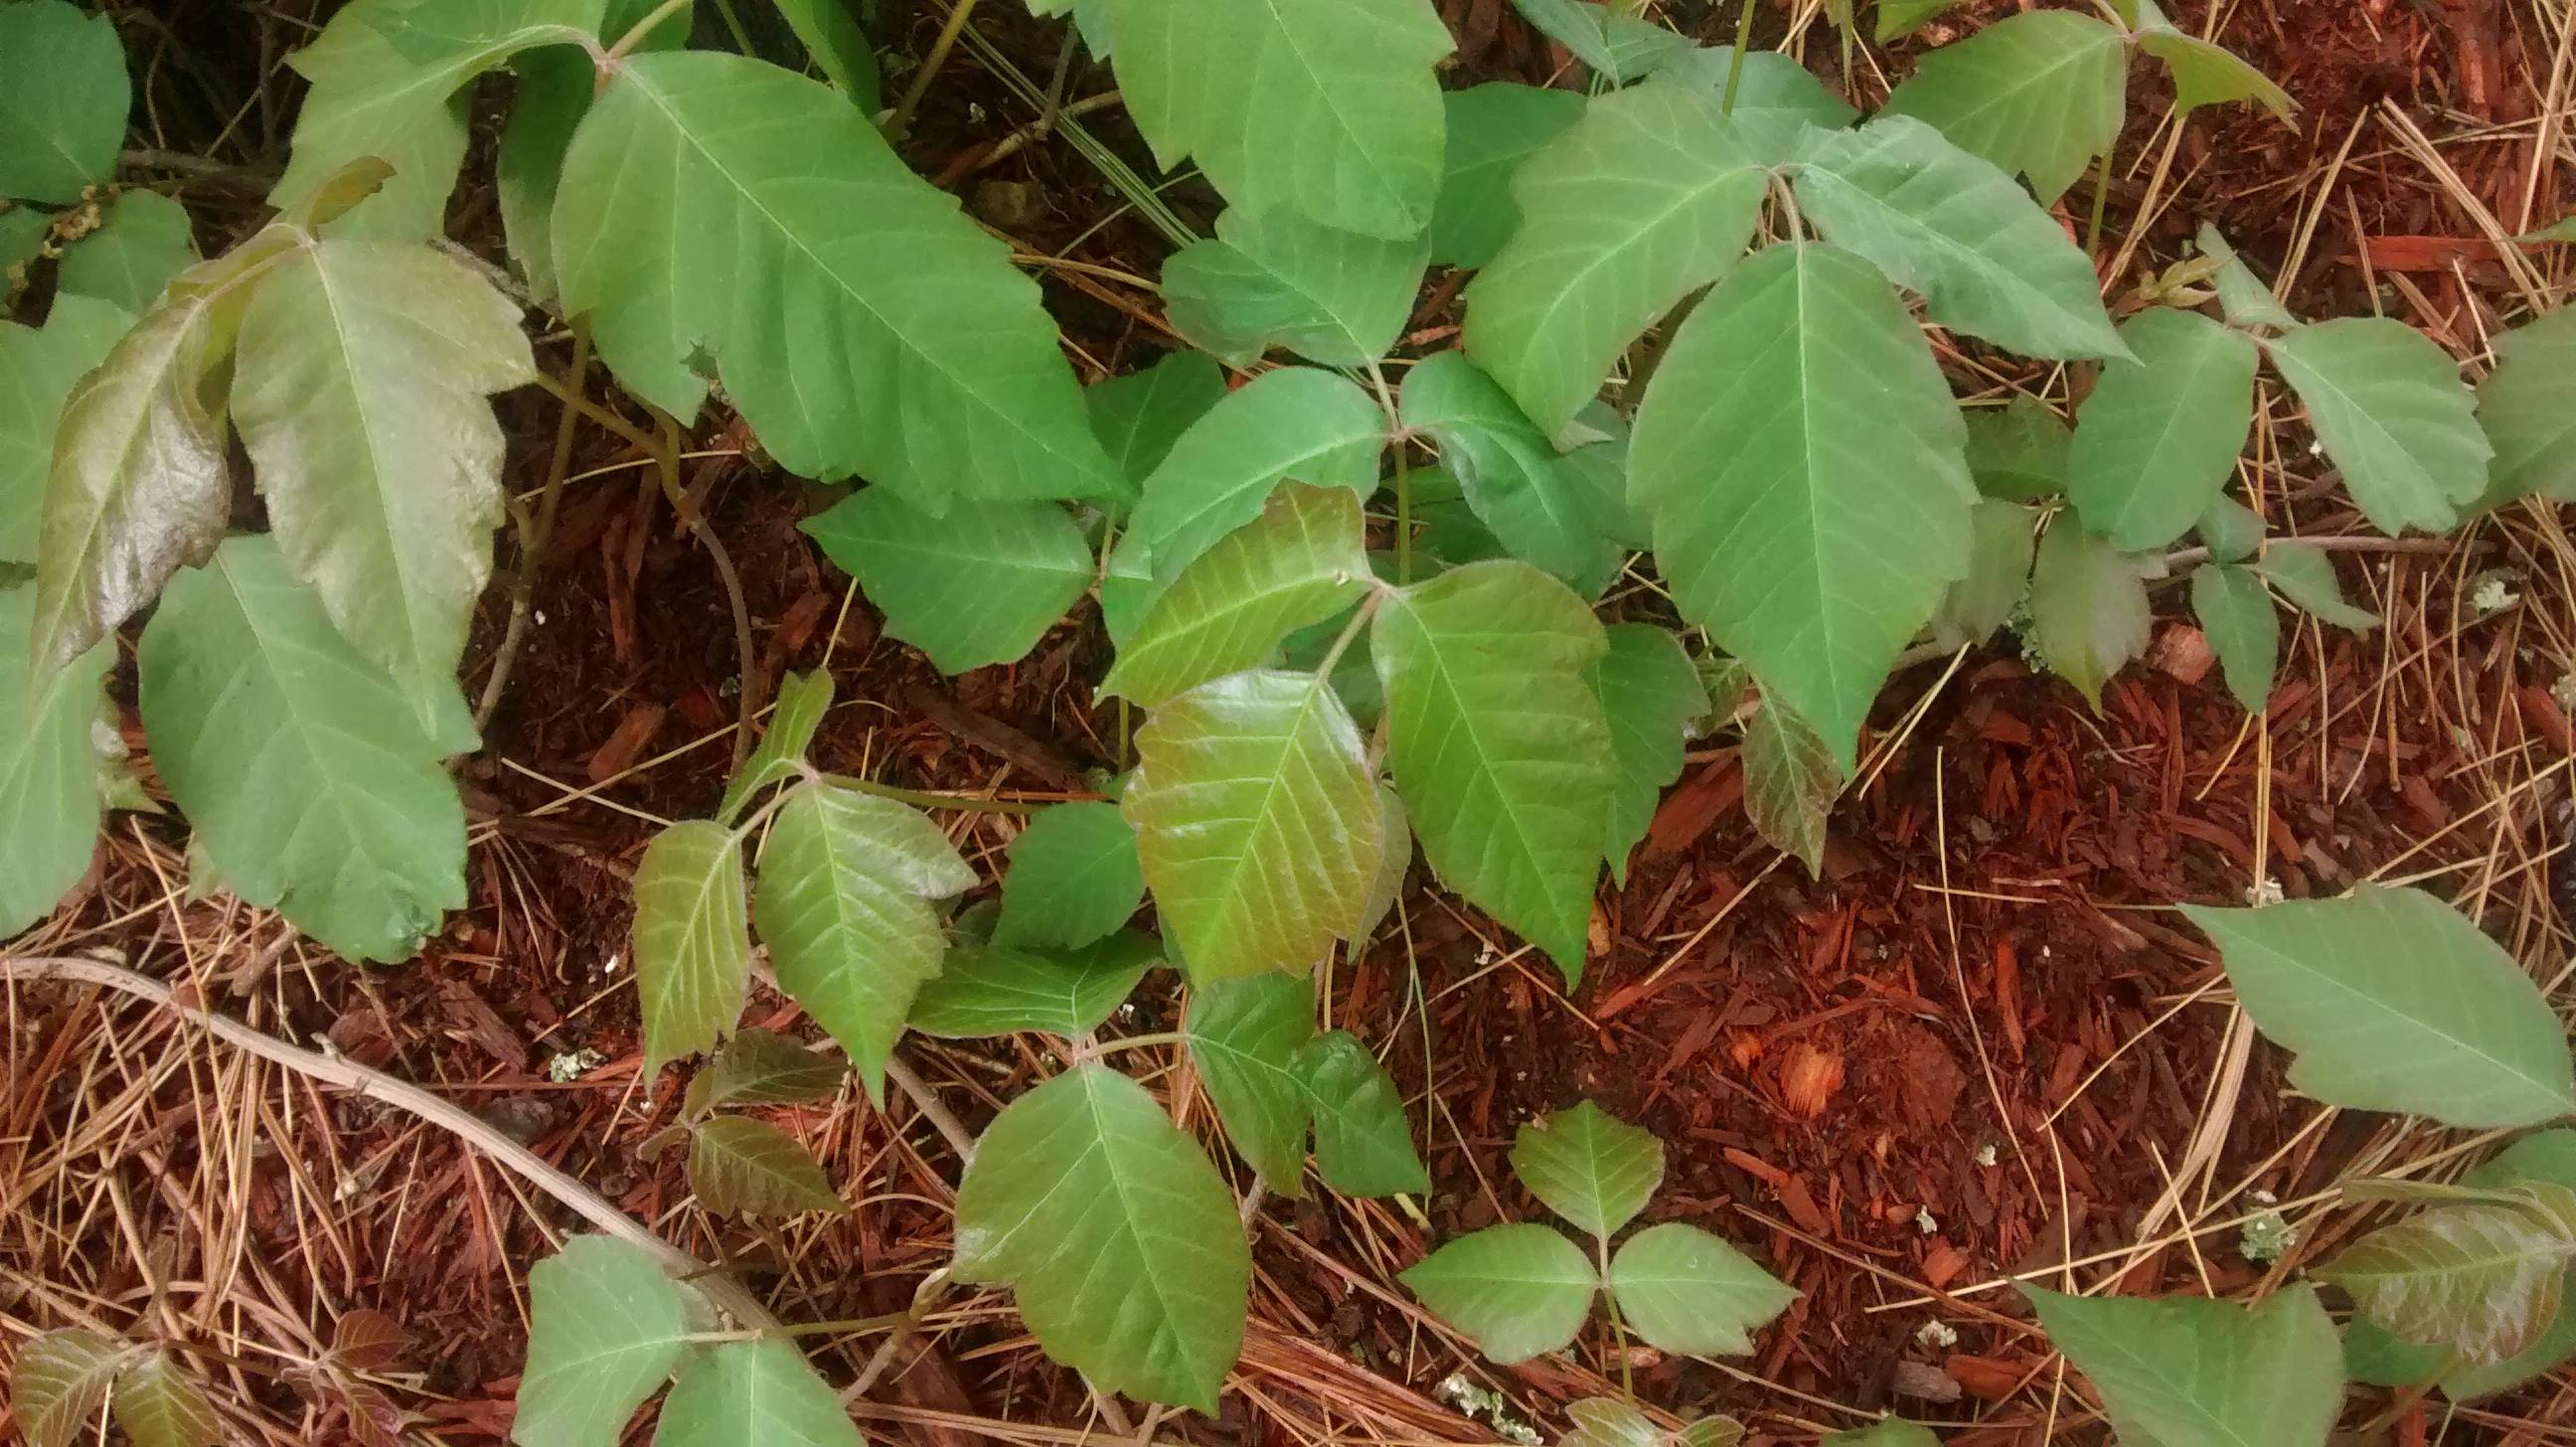 identification  Which of these if any are poison ivy  Gardening  Landscaping Stack Exchange